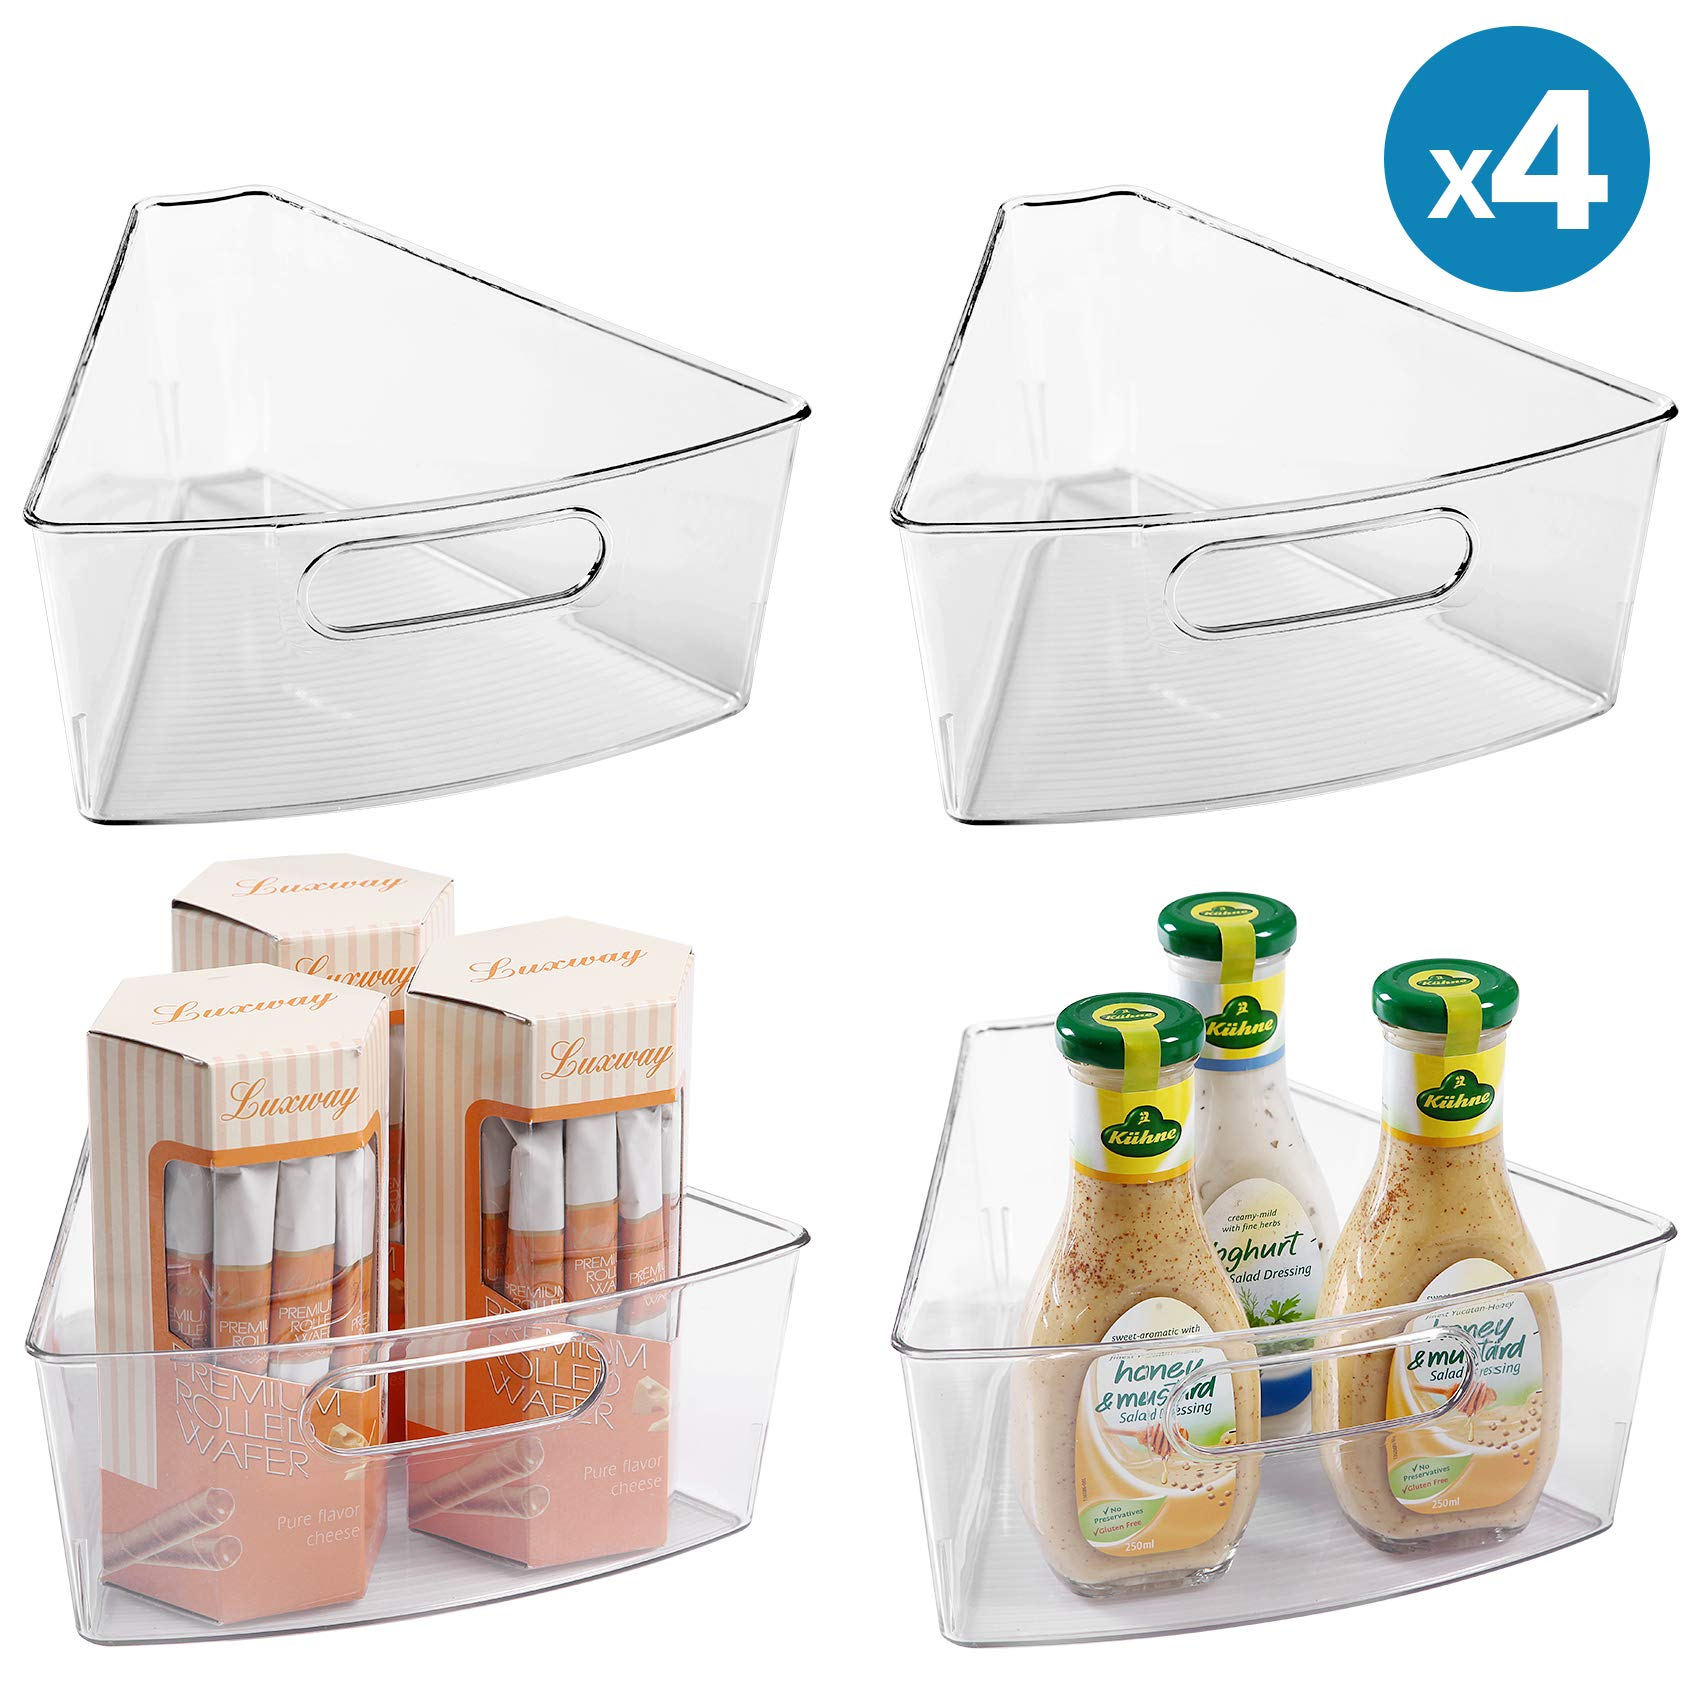 Lazy Susan Organizers (4 Packs), 10''x9.4''x4'' Plastic Transparent Kitchen Cabinet Storage Bins, 4'' Deep Container, 1/8 Wedge - Food Safe, BPA Free by MoMA